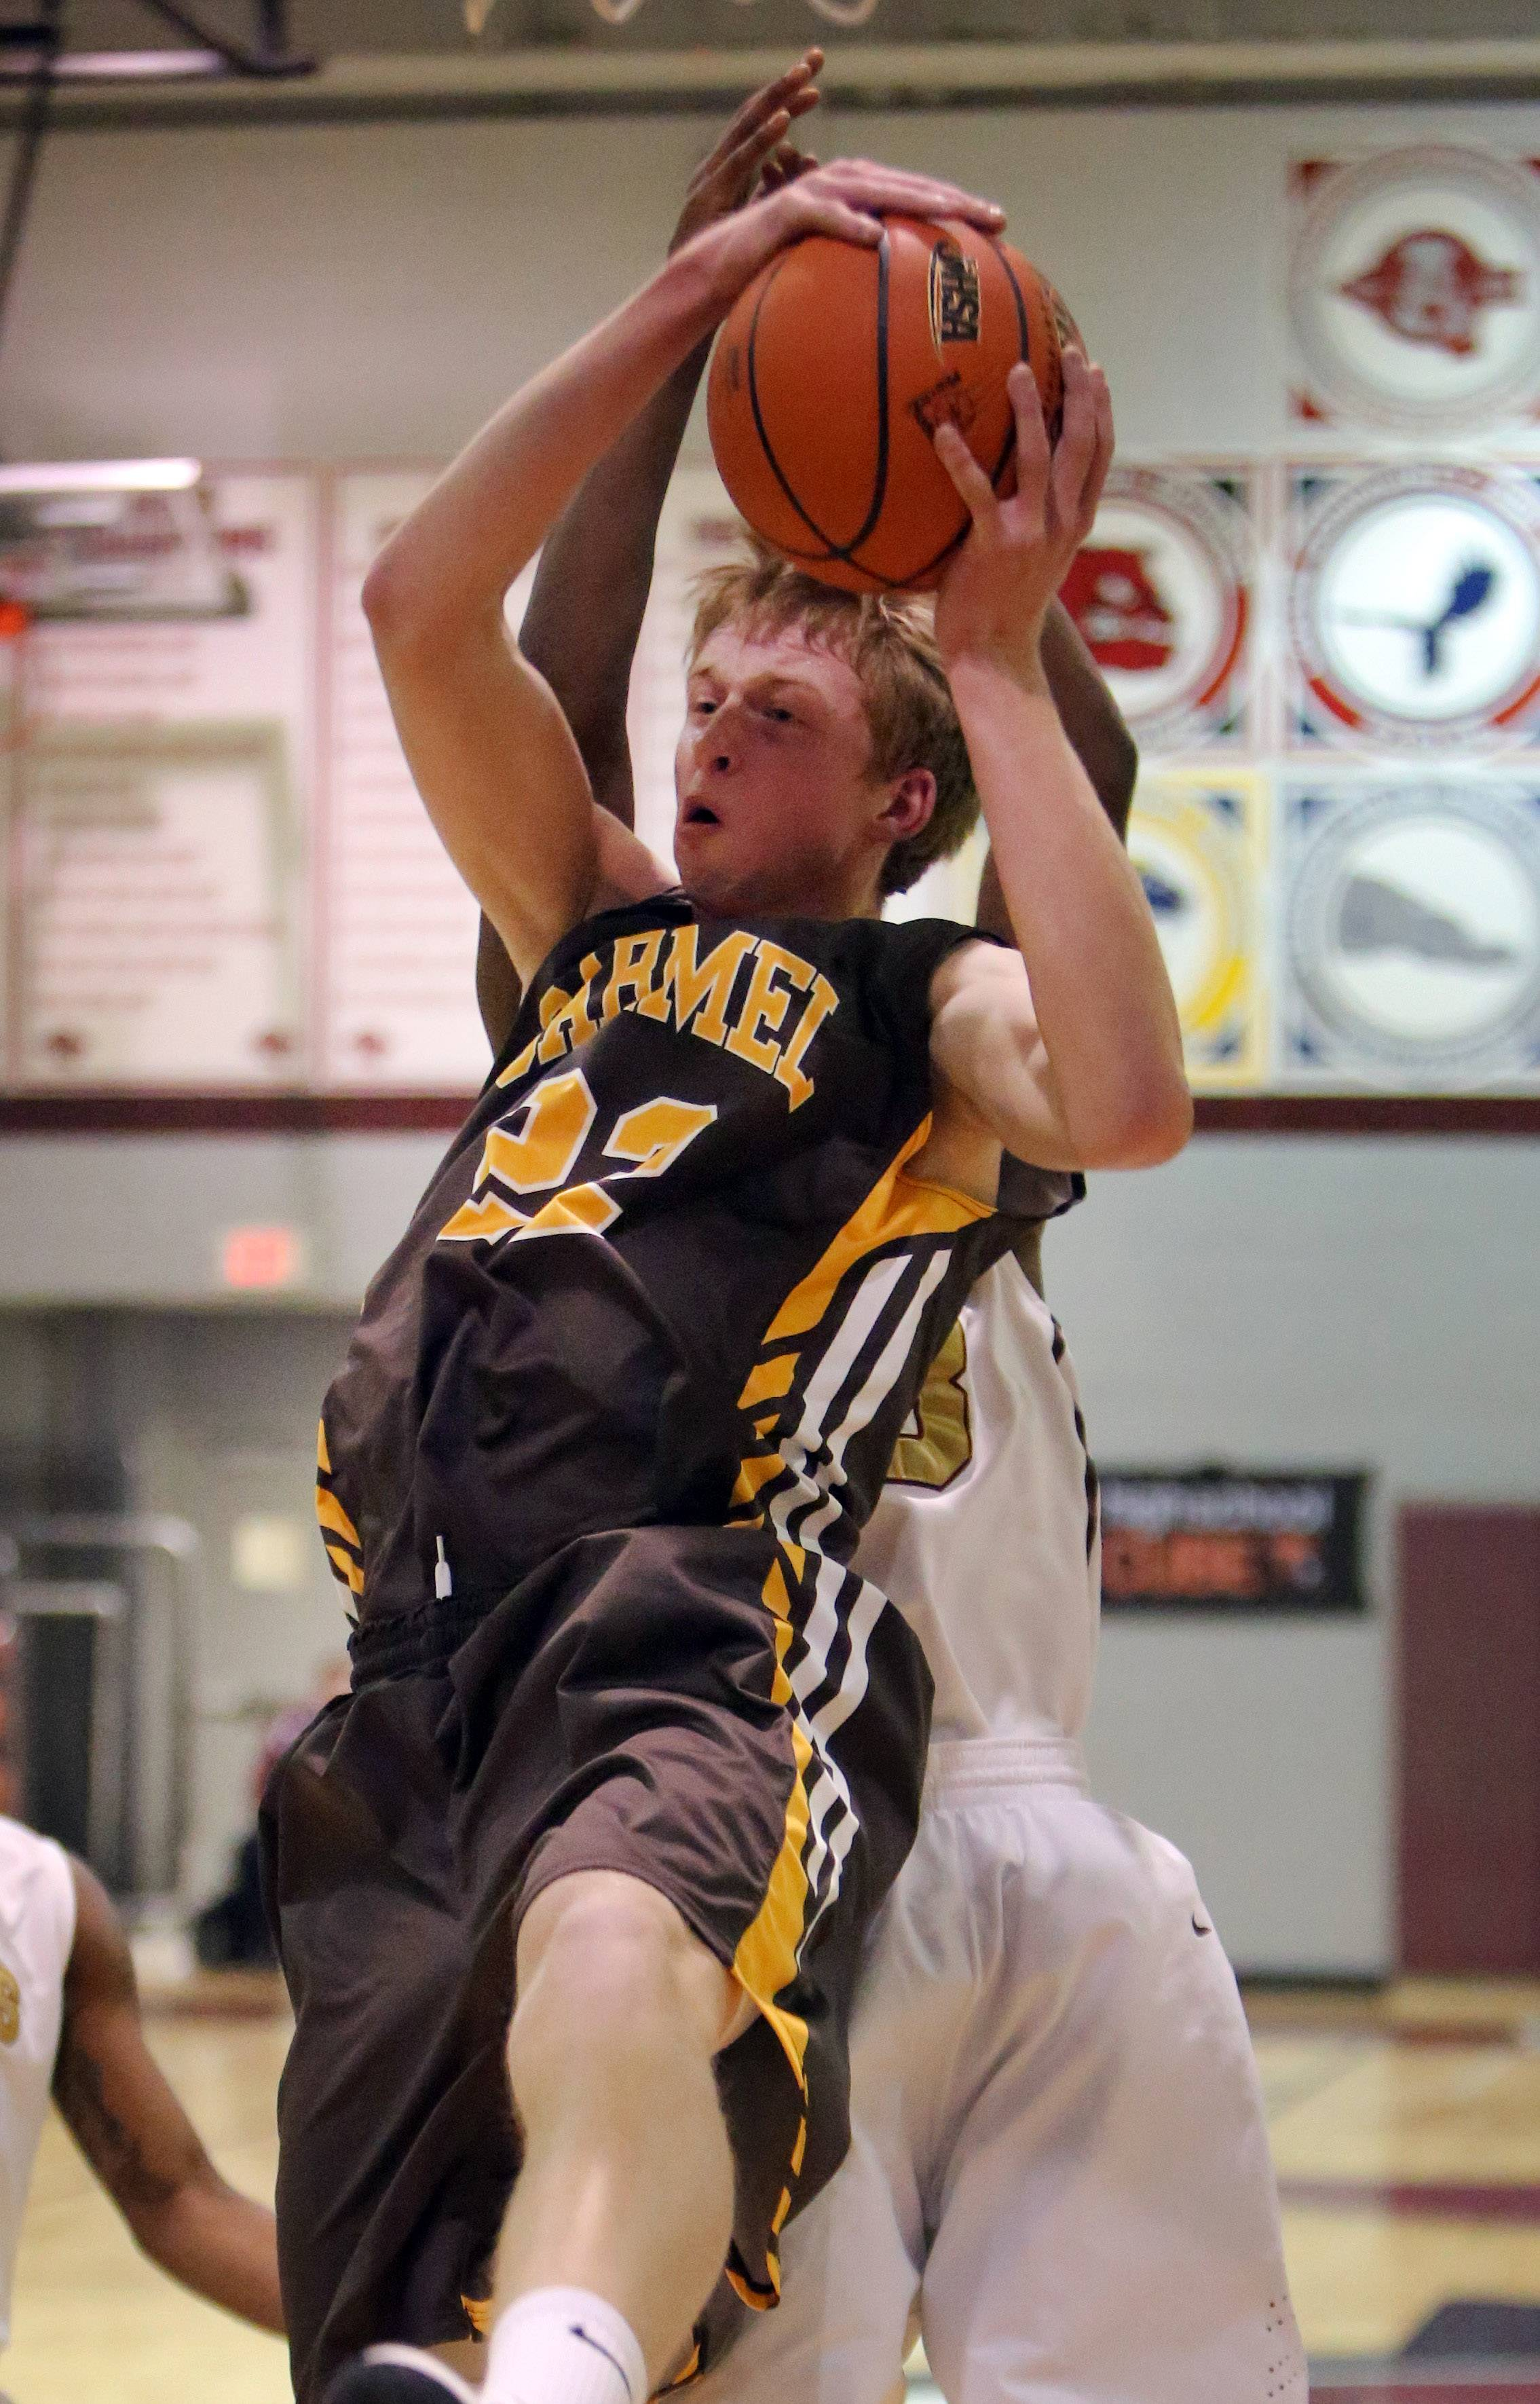 Carmel's Michael Barr pulls down a rebound during the Class 3A sectional semifinal at Antioch on Wednesday.